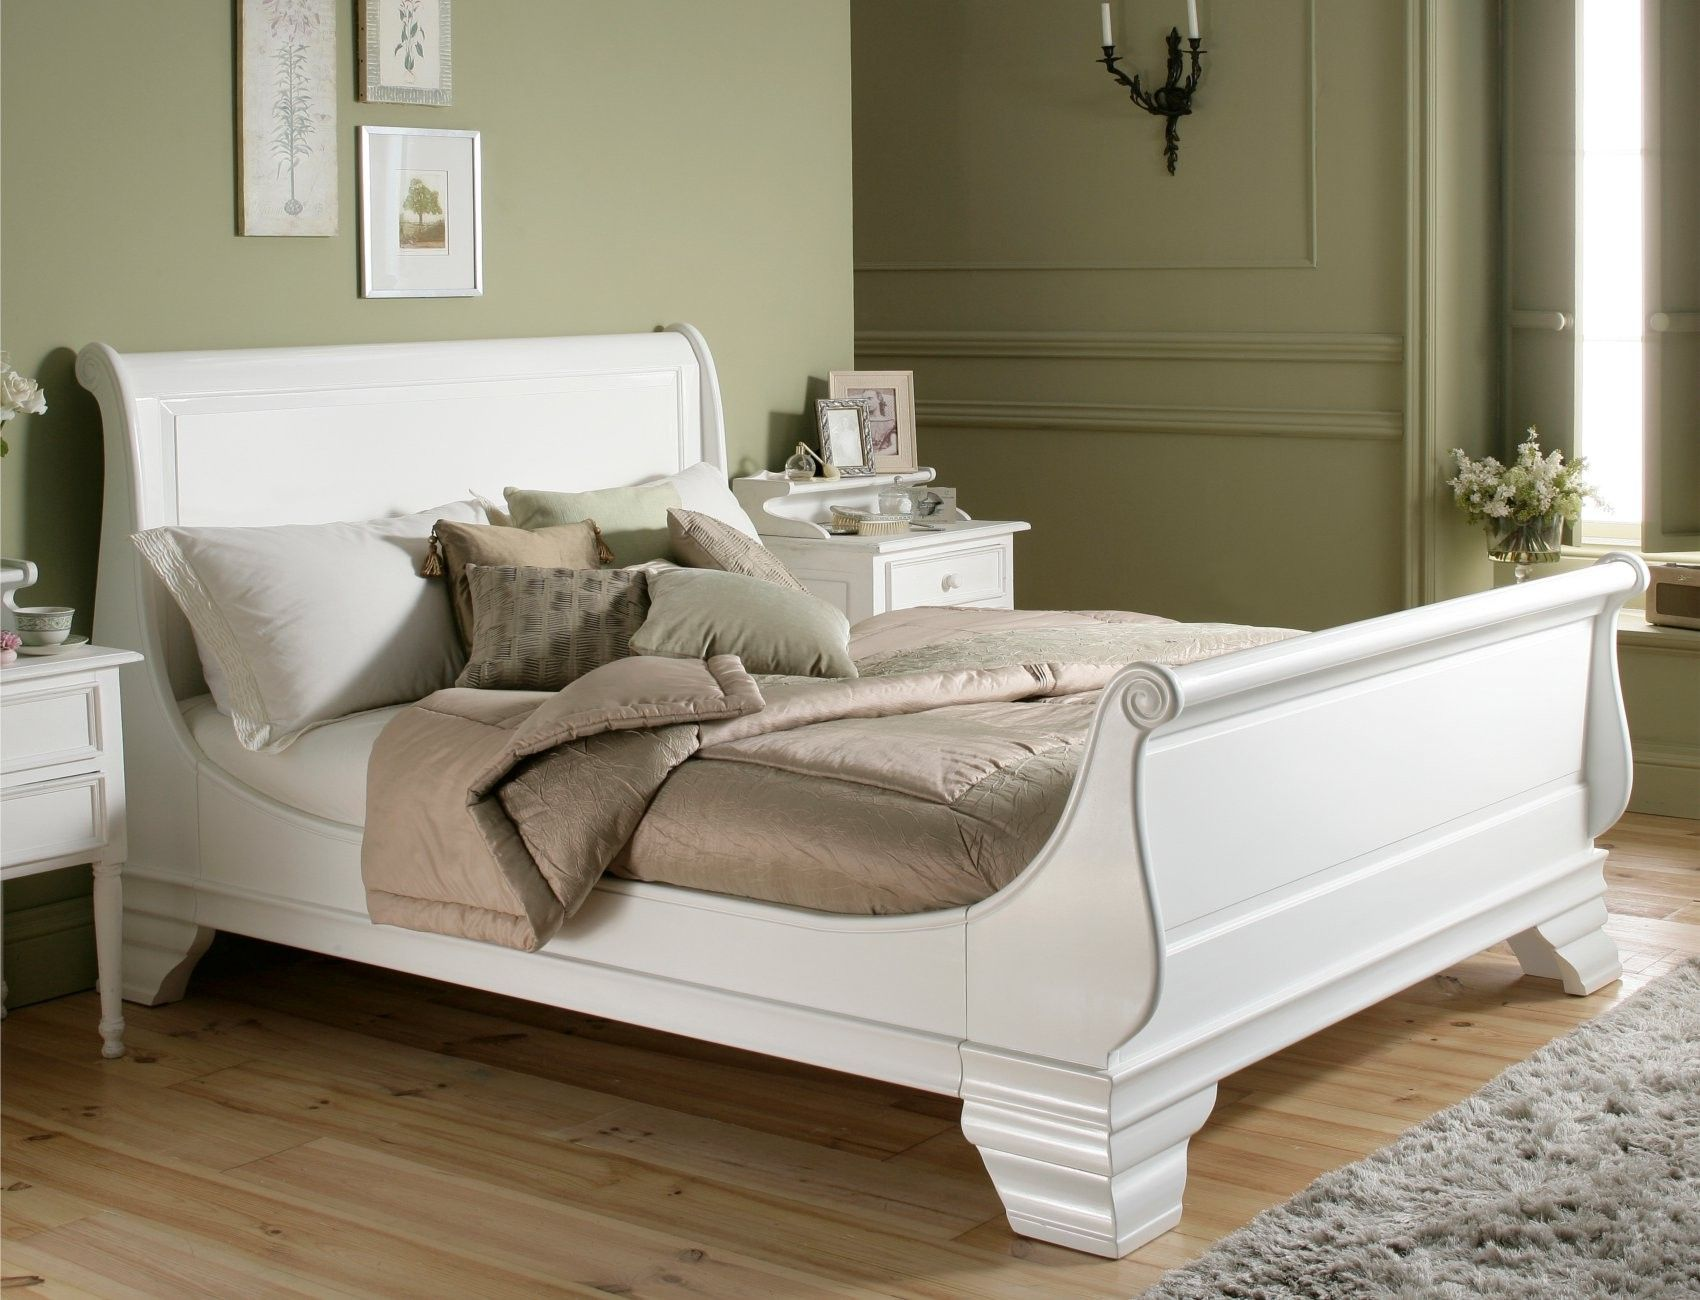 Bordeaux French Style White Wooden Sleigh Bed White Wooden Bed White Sleigh Bed Wooden King Size Bed